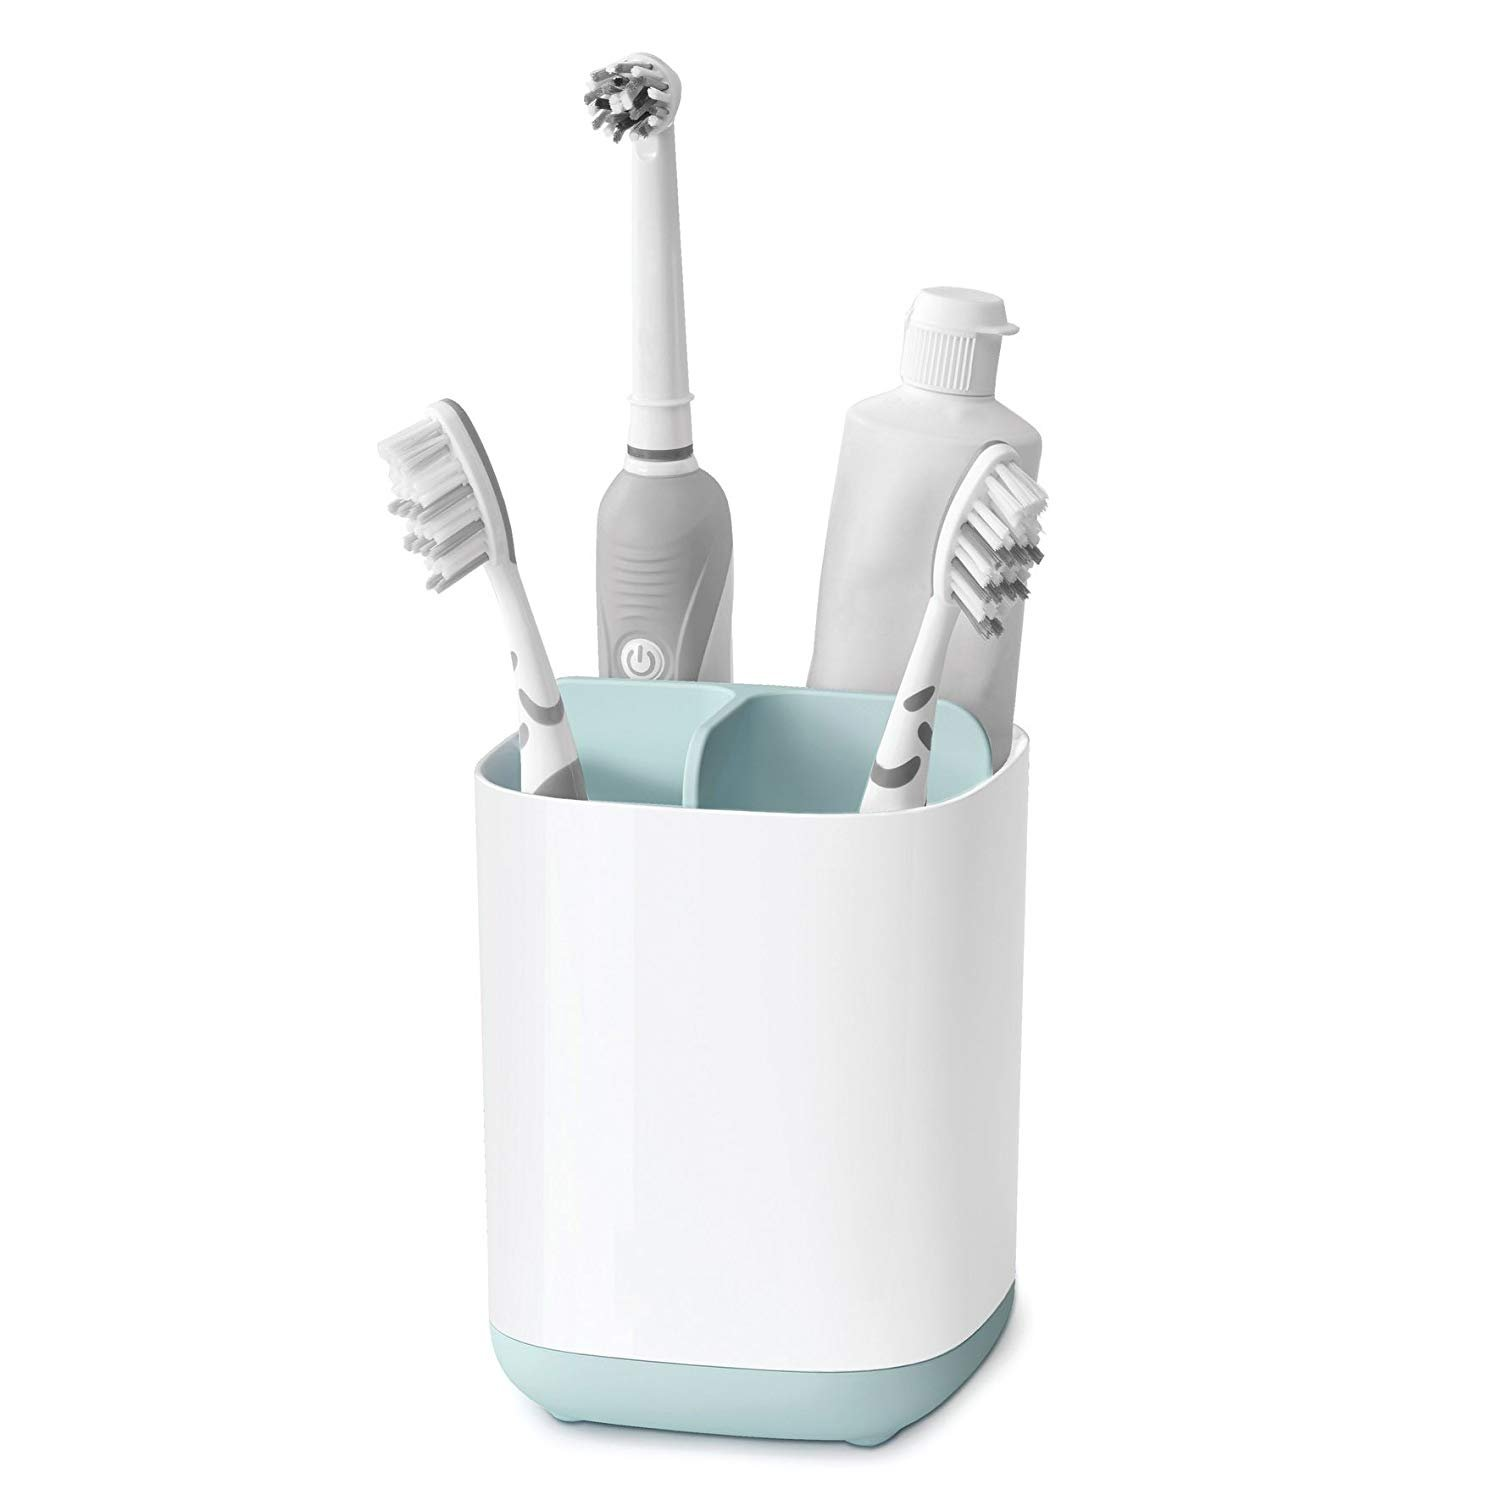 YKHENGTU Bathroom Easy-Store Toothbrush Caddy, Detachable Toothpaste Holder Bathroom Organizer Toothbrush Toothpaste Storage Rack Easy to Wash and Natural Drying (Small)